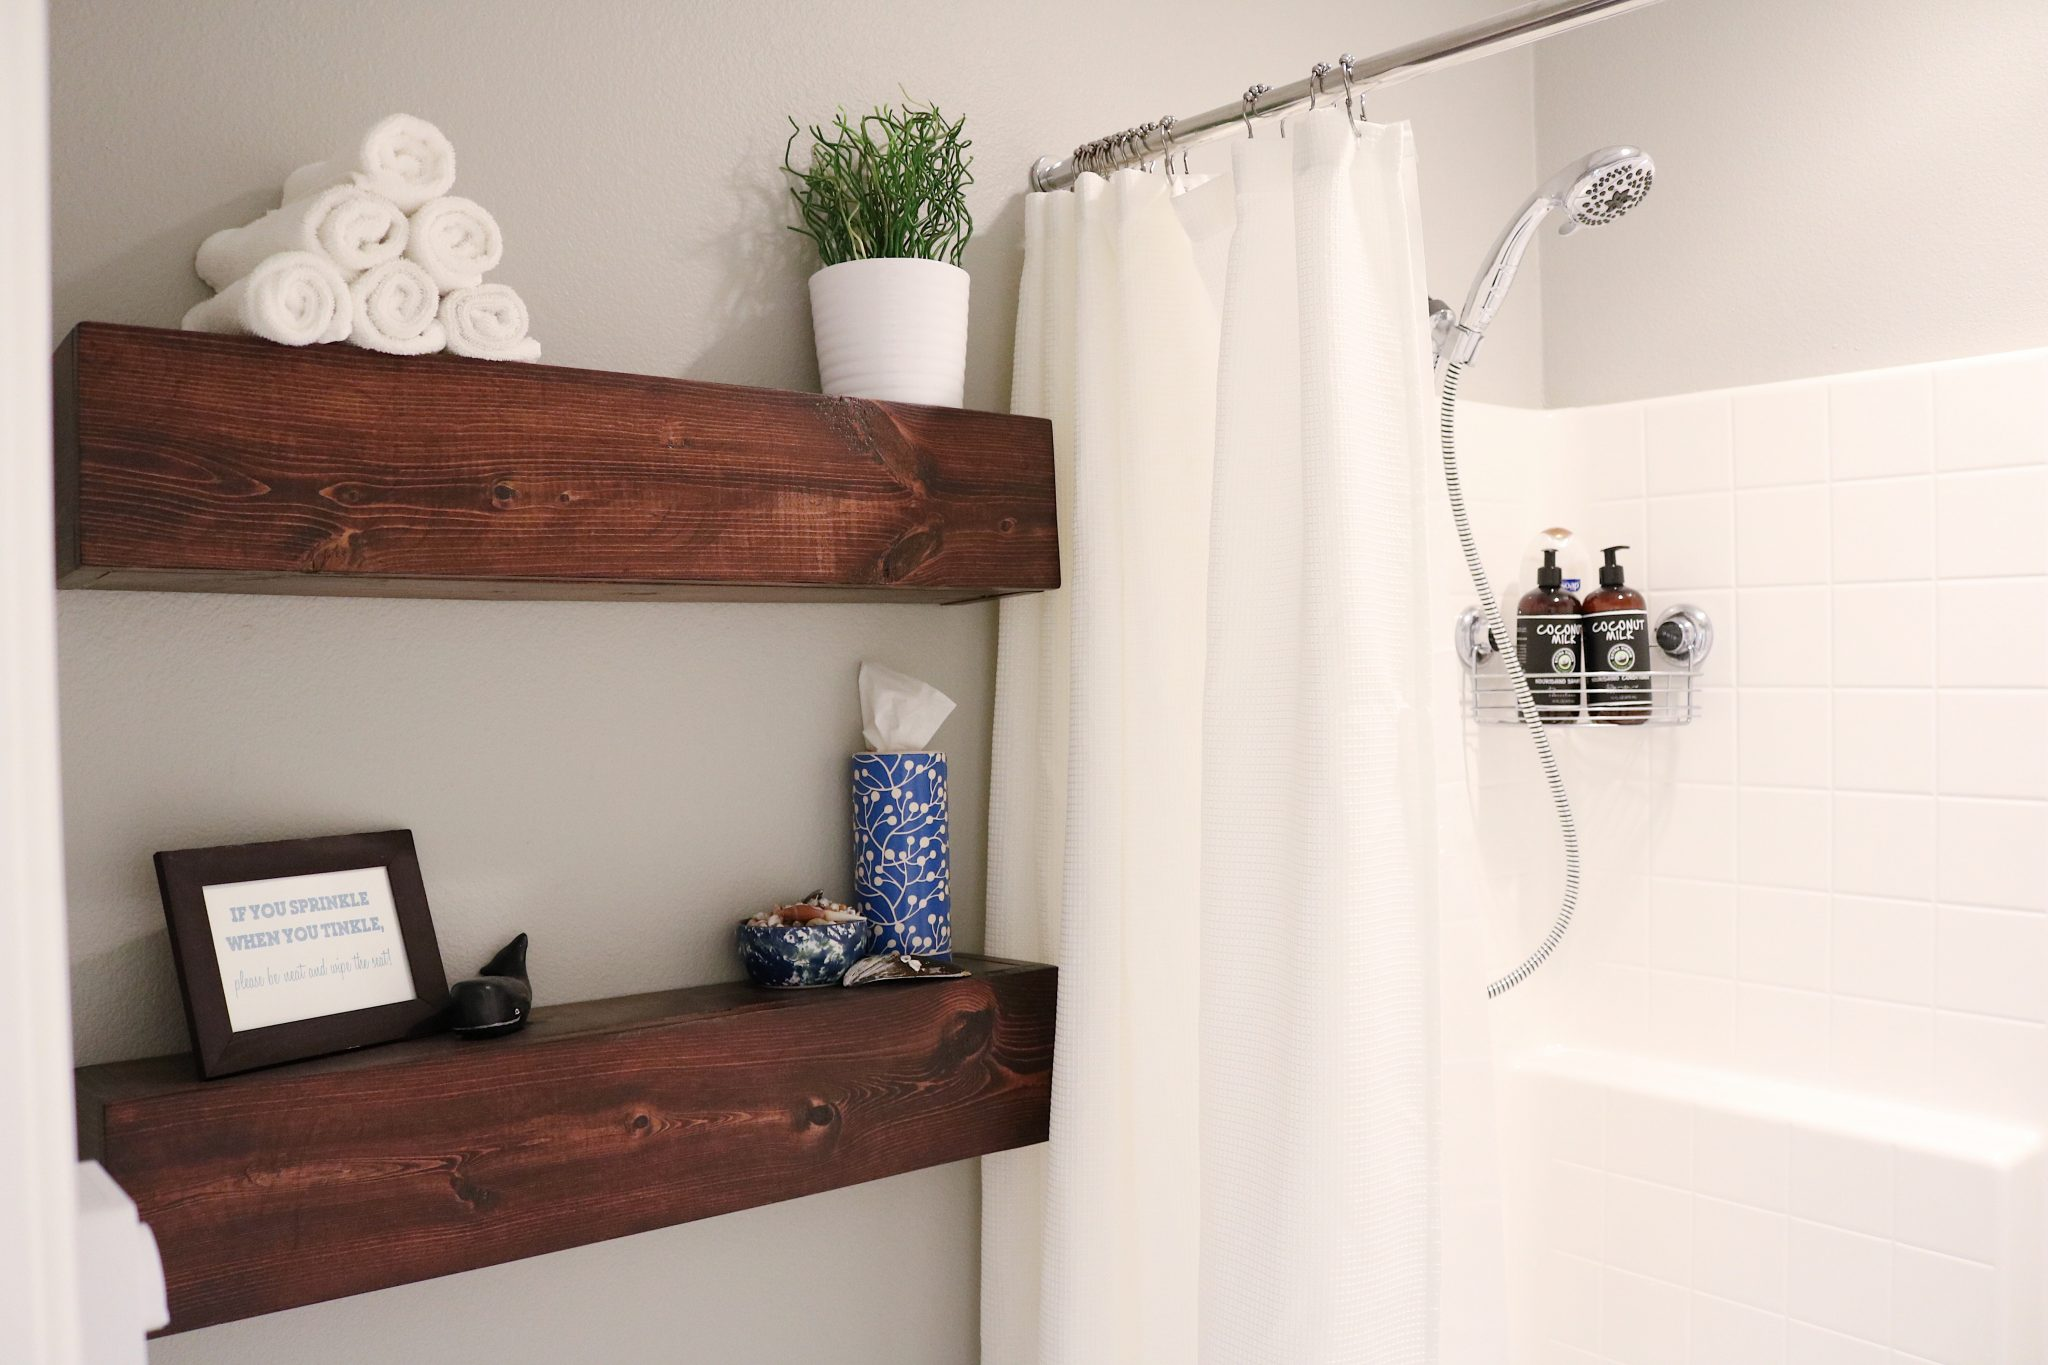 floating shelves for the bathroom timber crow chunky shelf with drawer how build simple wood ikea bookcase storage unit coat pegs cool diy doors reclaimed office furniture blu ray